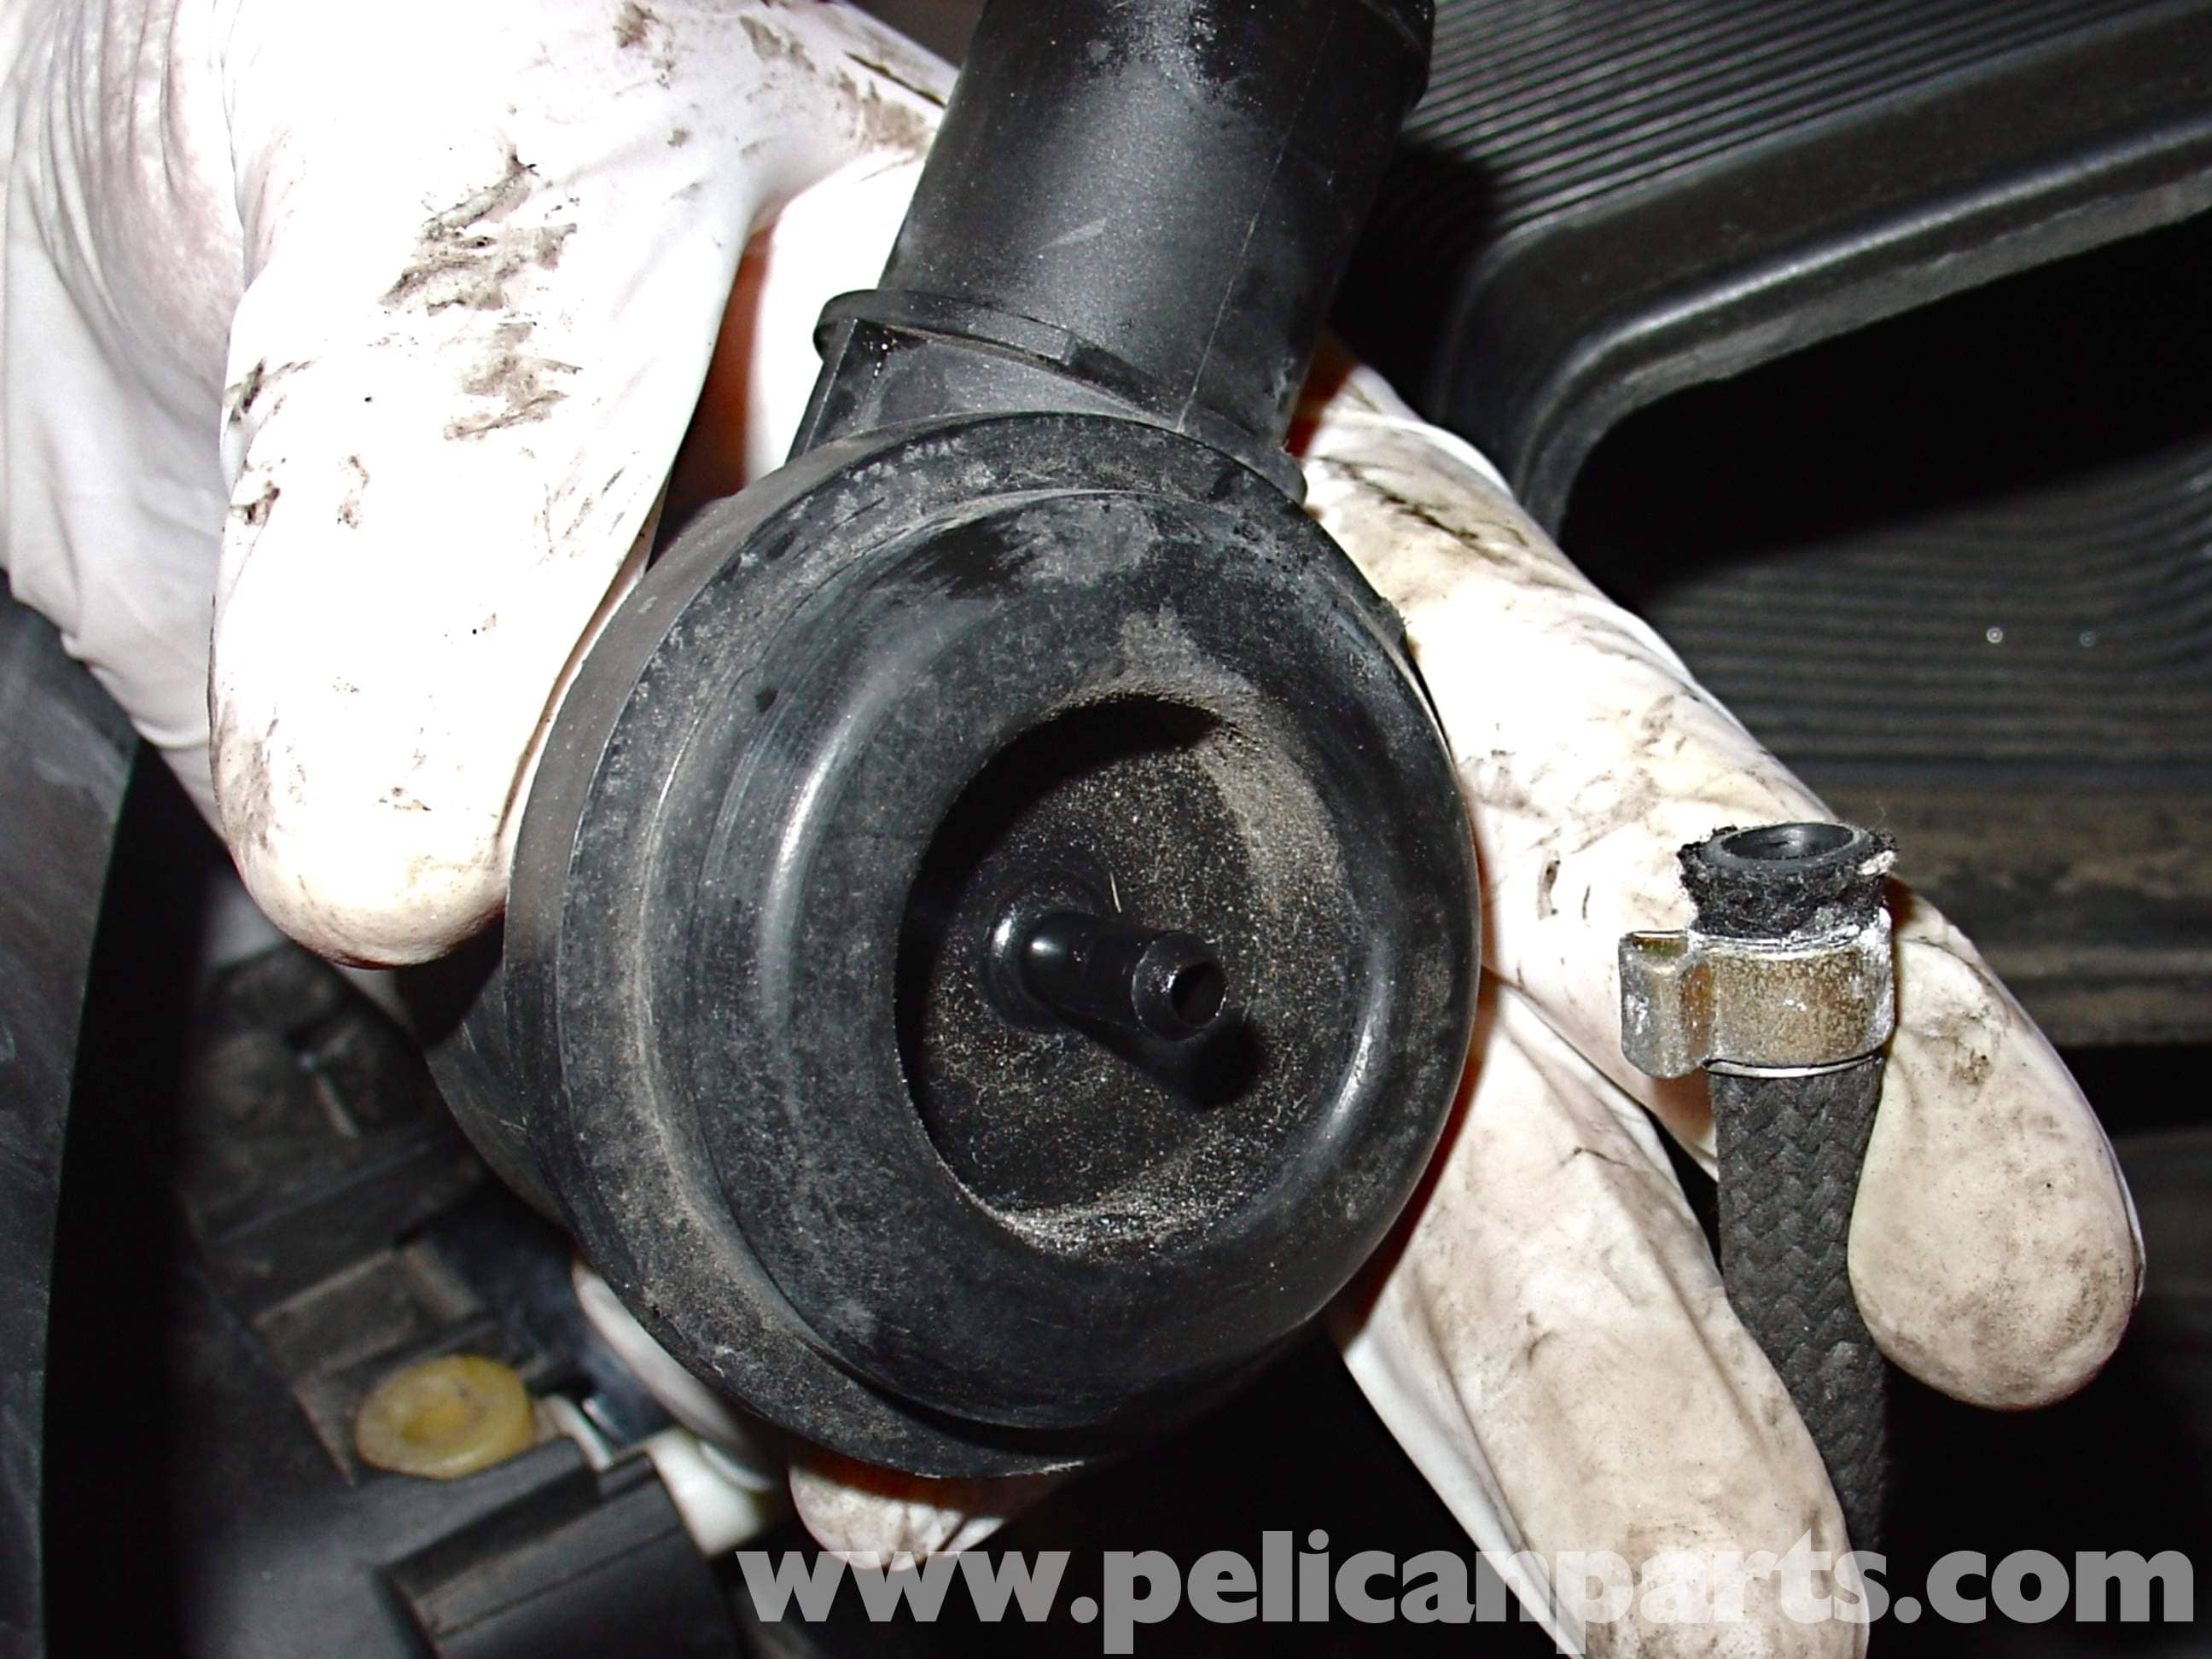 turbocharger recirculation valve (n249) (diverter valve) faulty